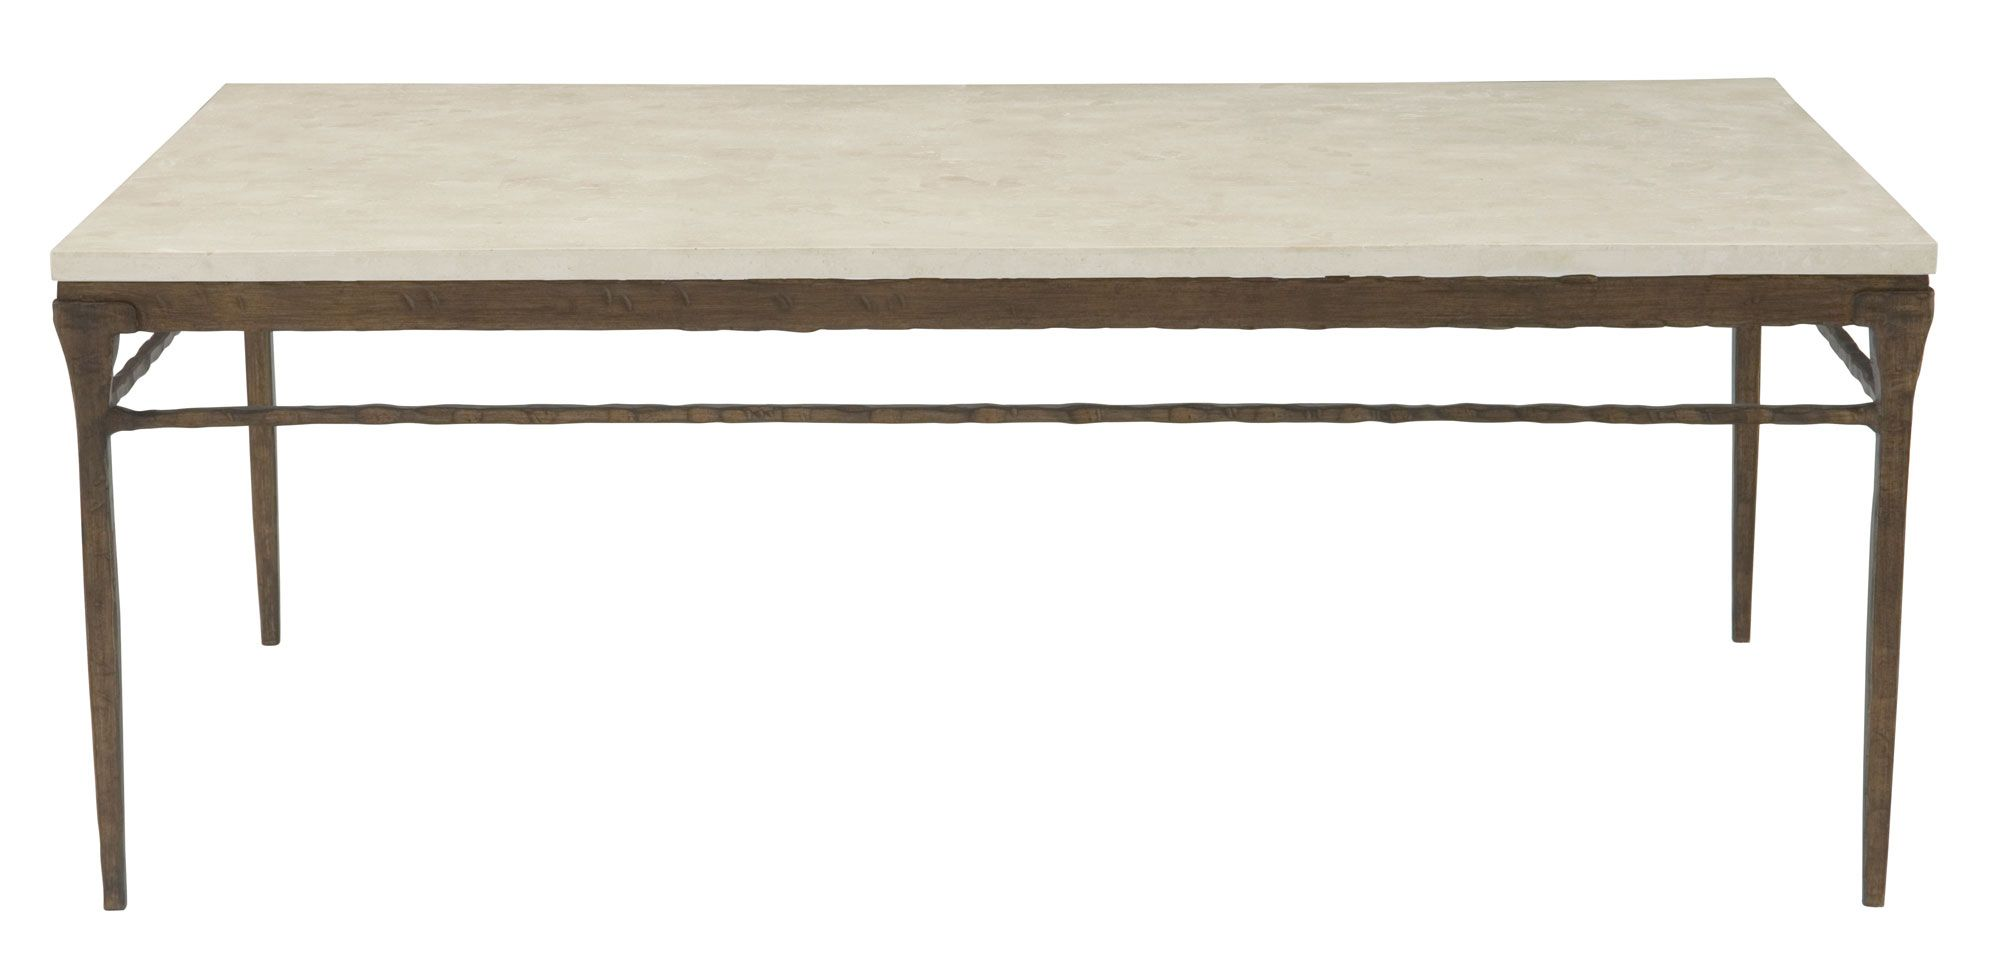 Cocktail Table Bernhardt Inches W 54 3 8 D 32 3 8 H